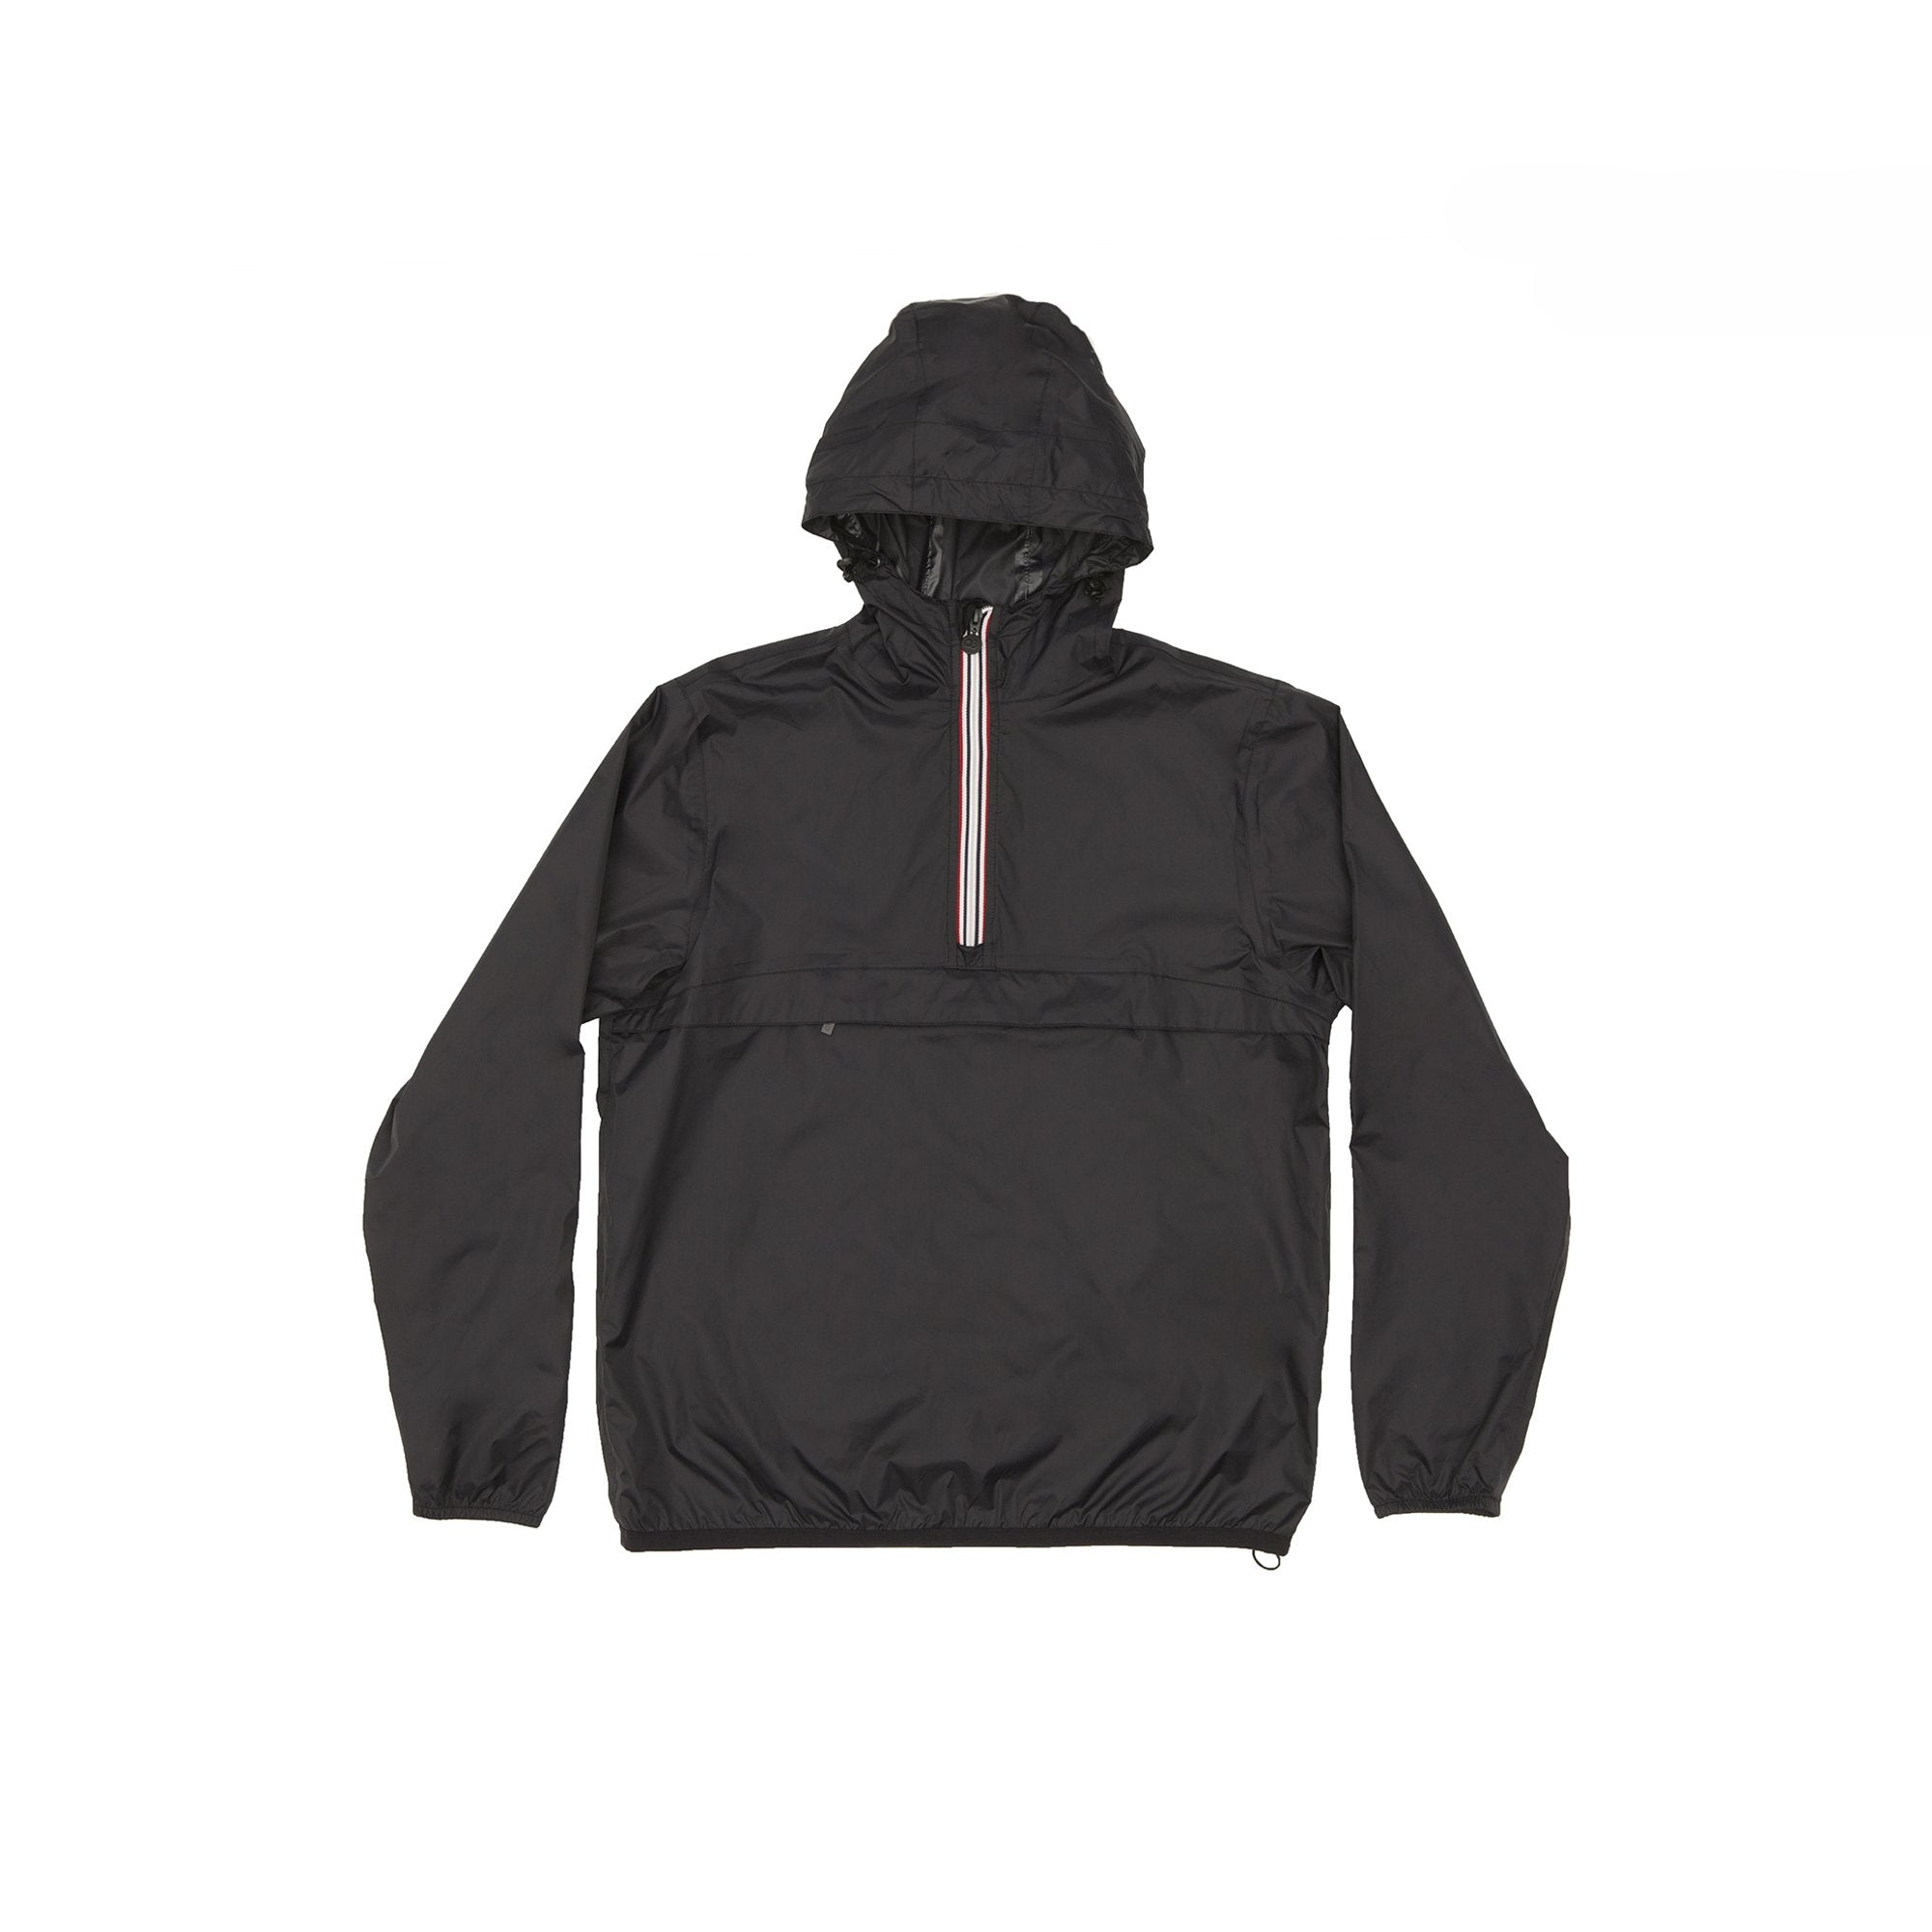 Black Quarter Zip Packable Jacket